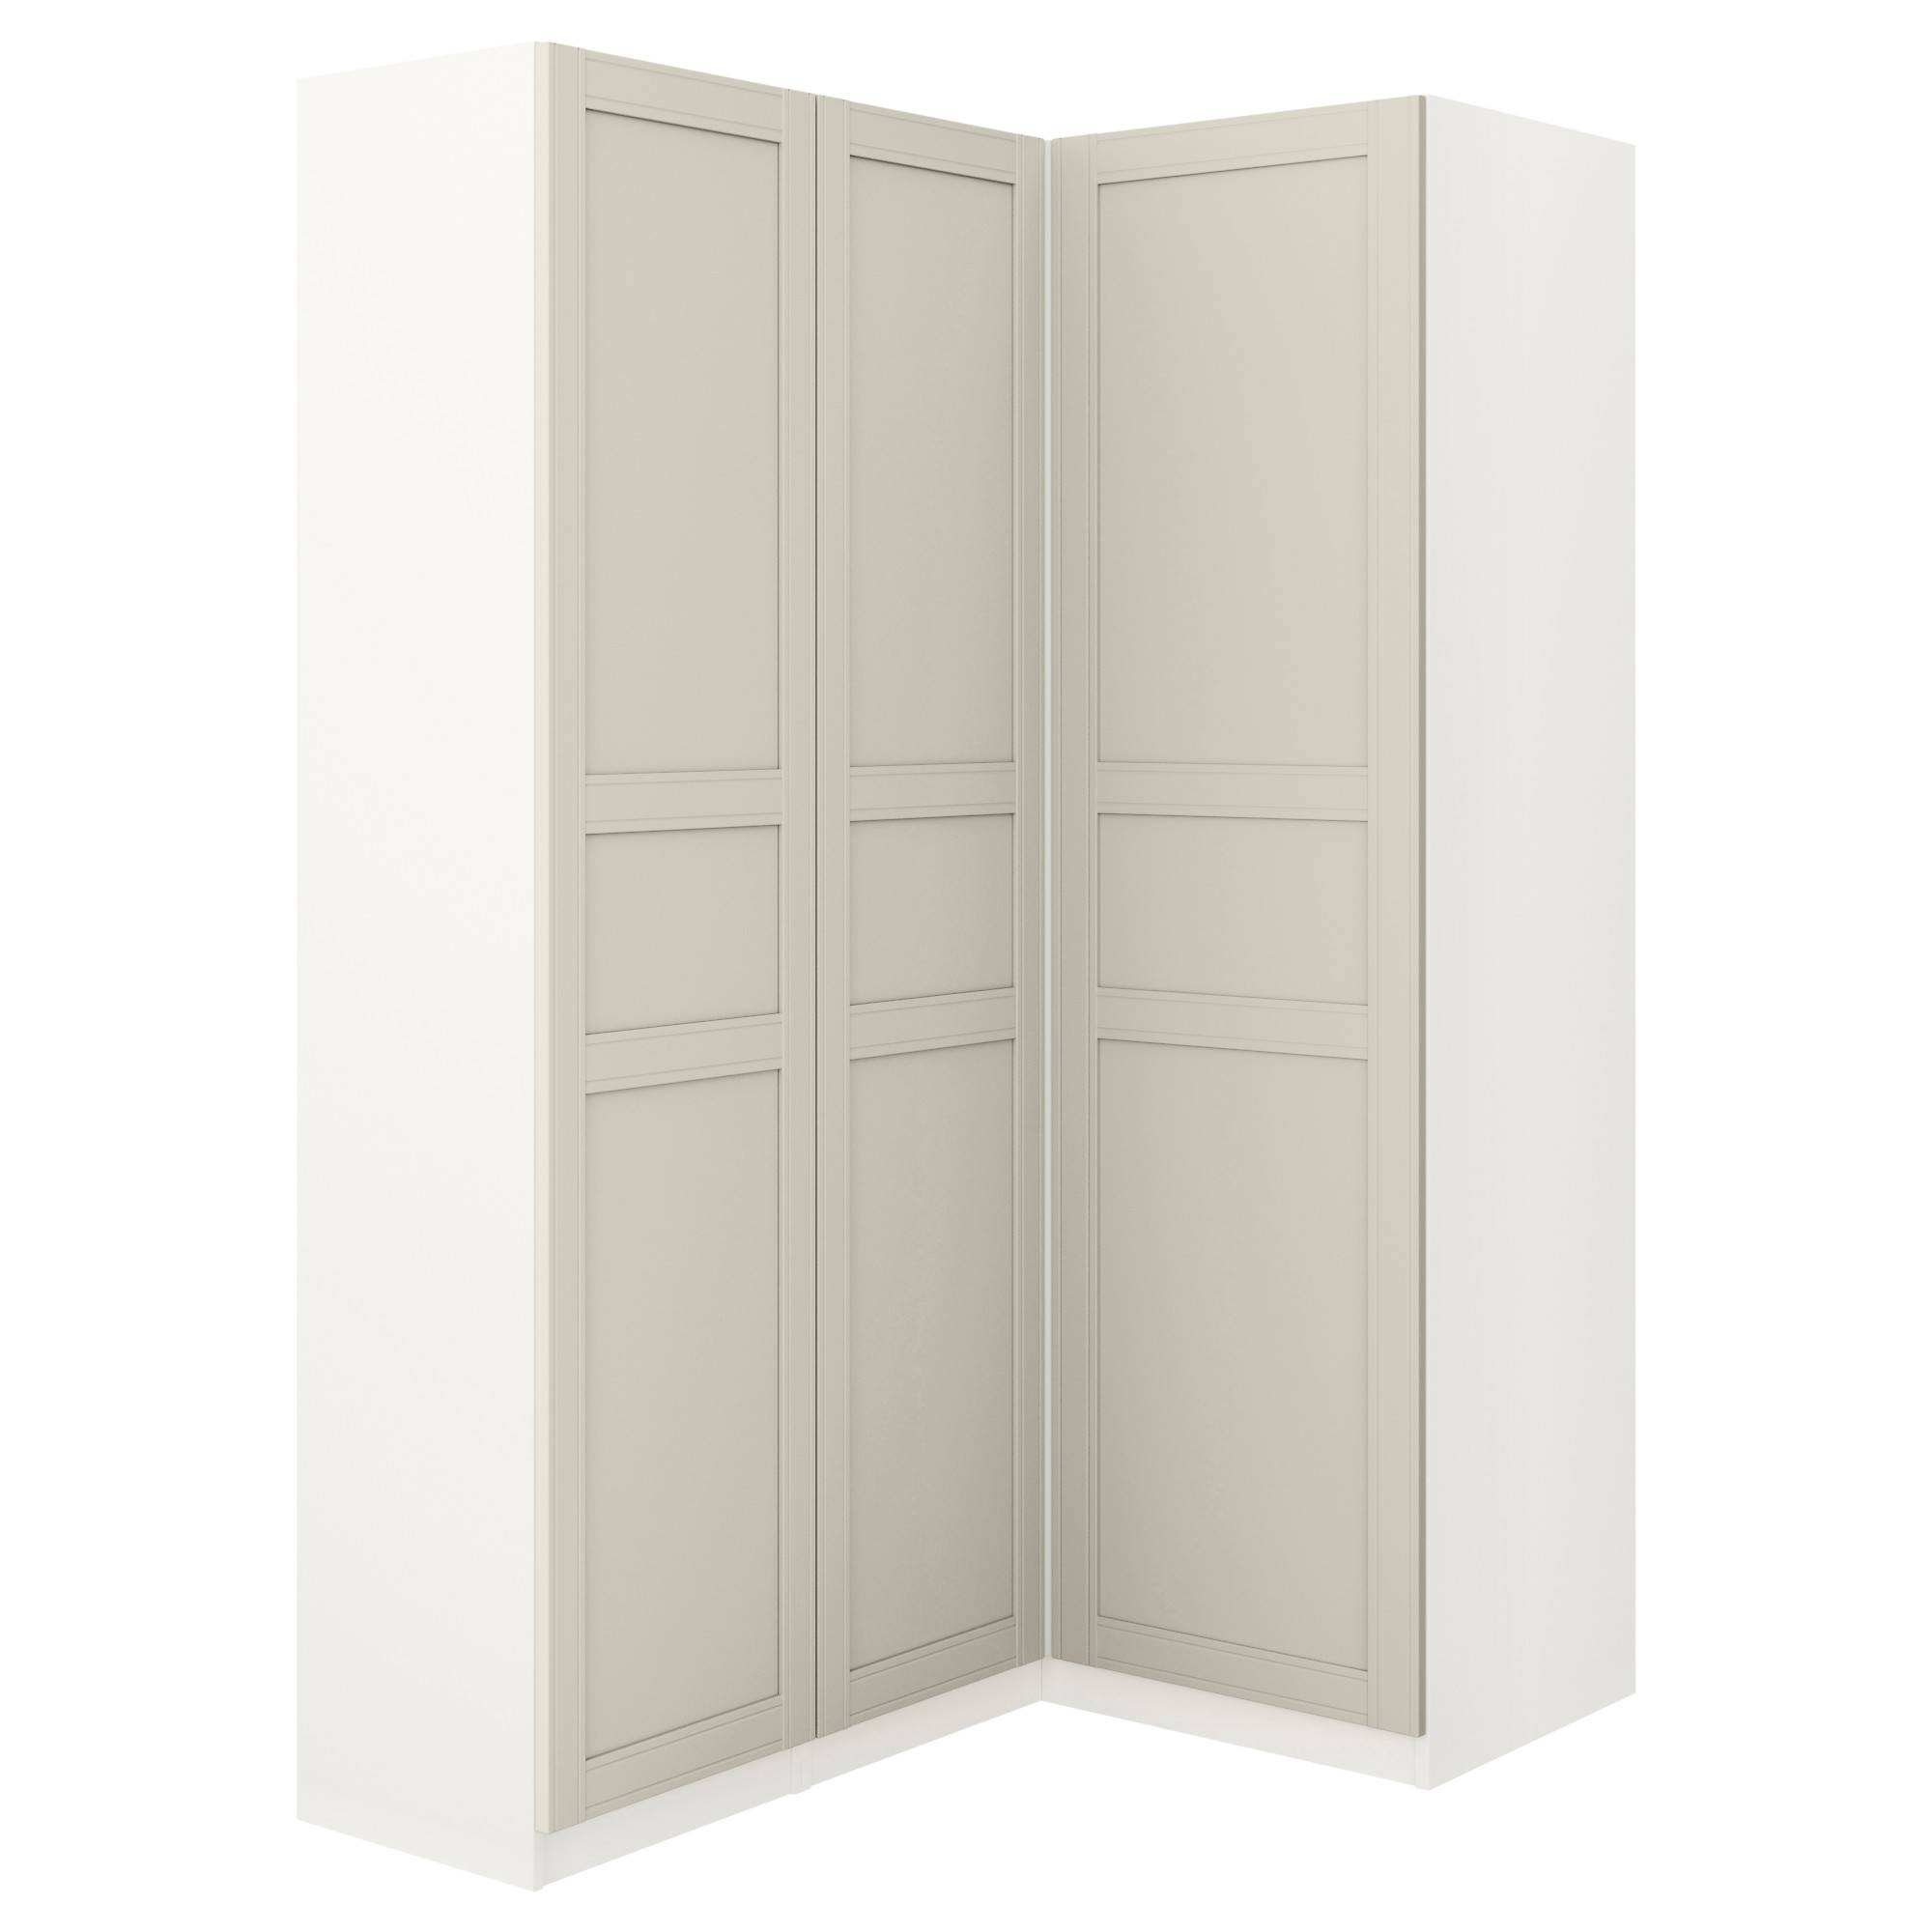 Pax Corner Wardrobe White/flisberget Light Beige 160/88X201 Cm - Ikea regarding White Corner Wardrobes (Image 11 of 15)